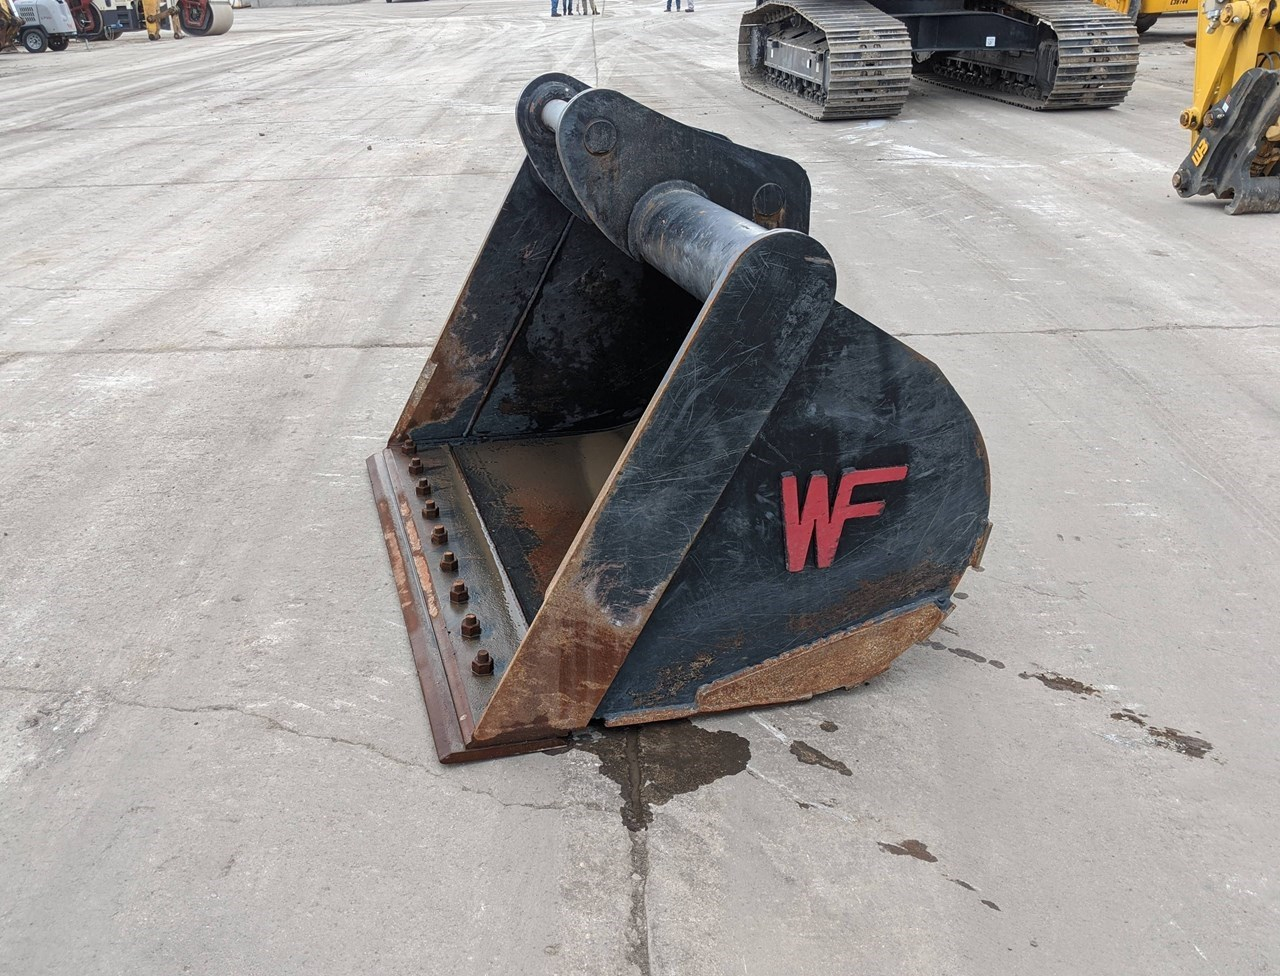 2019 WAHPETON FABRICATION PC170D60 Excavator Bucket For Sale